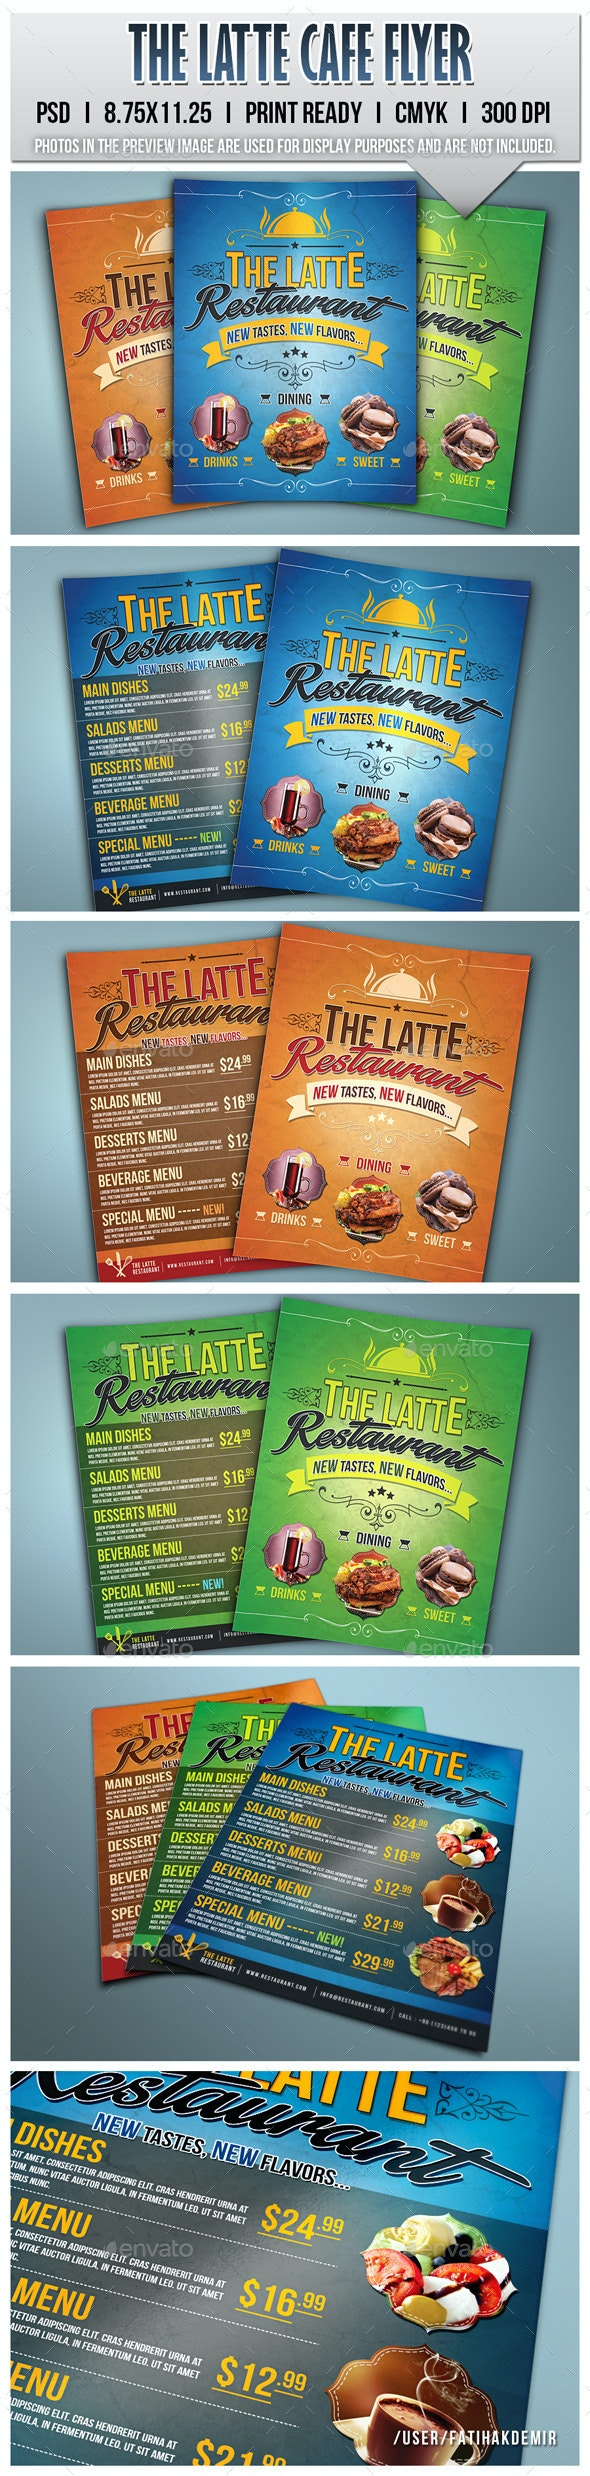 The Latte Cafe Flyer - Food Menus Print Templates